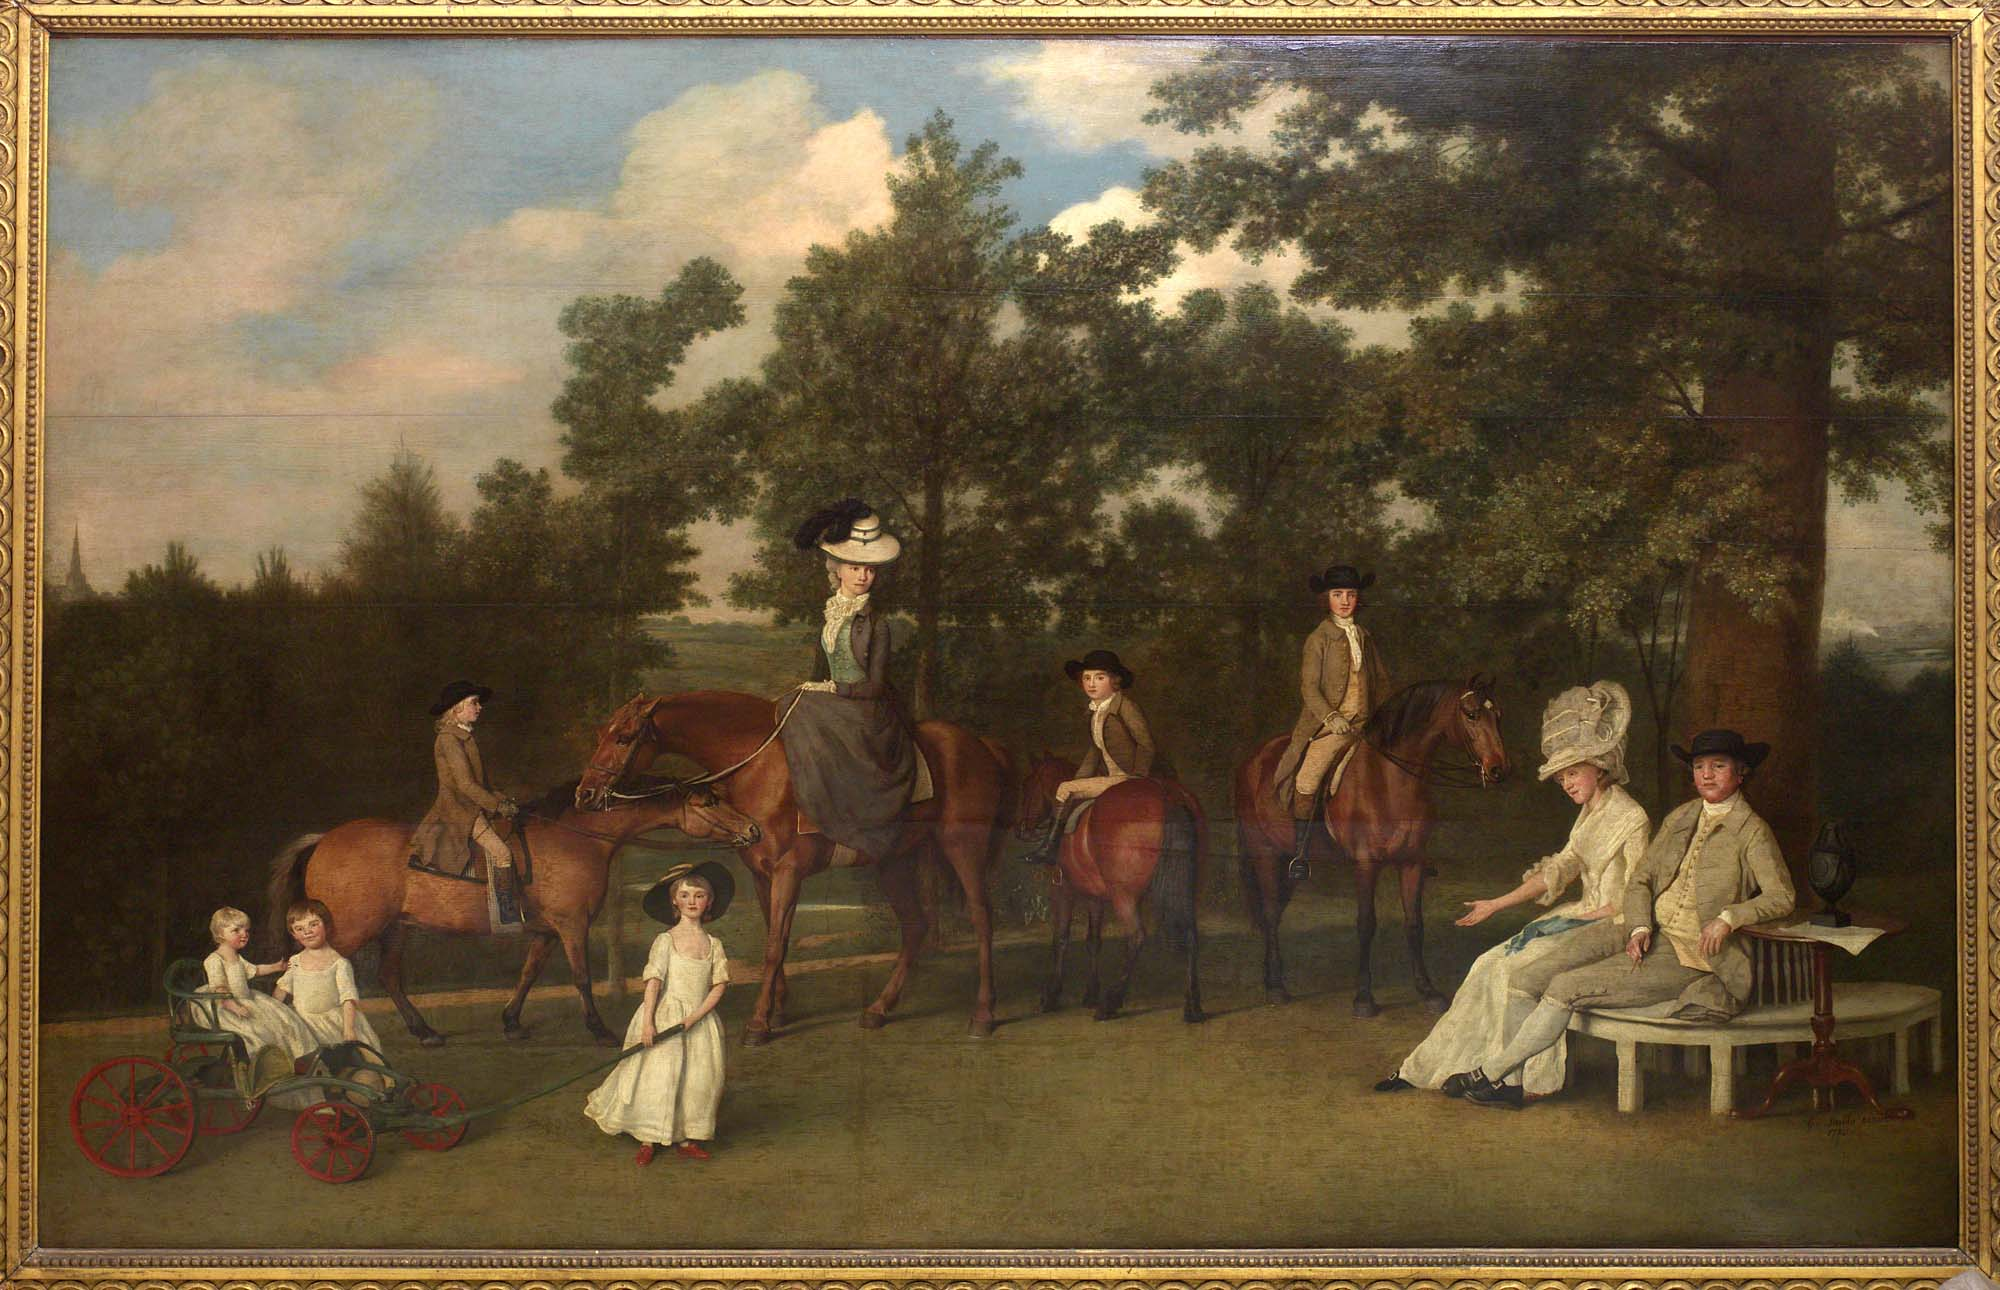 a group portrait of a Georgian family in a garden with horses